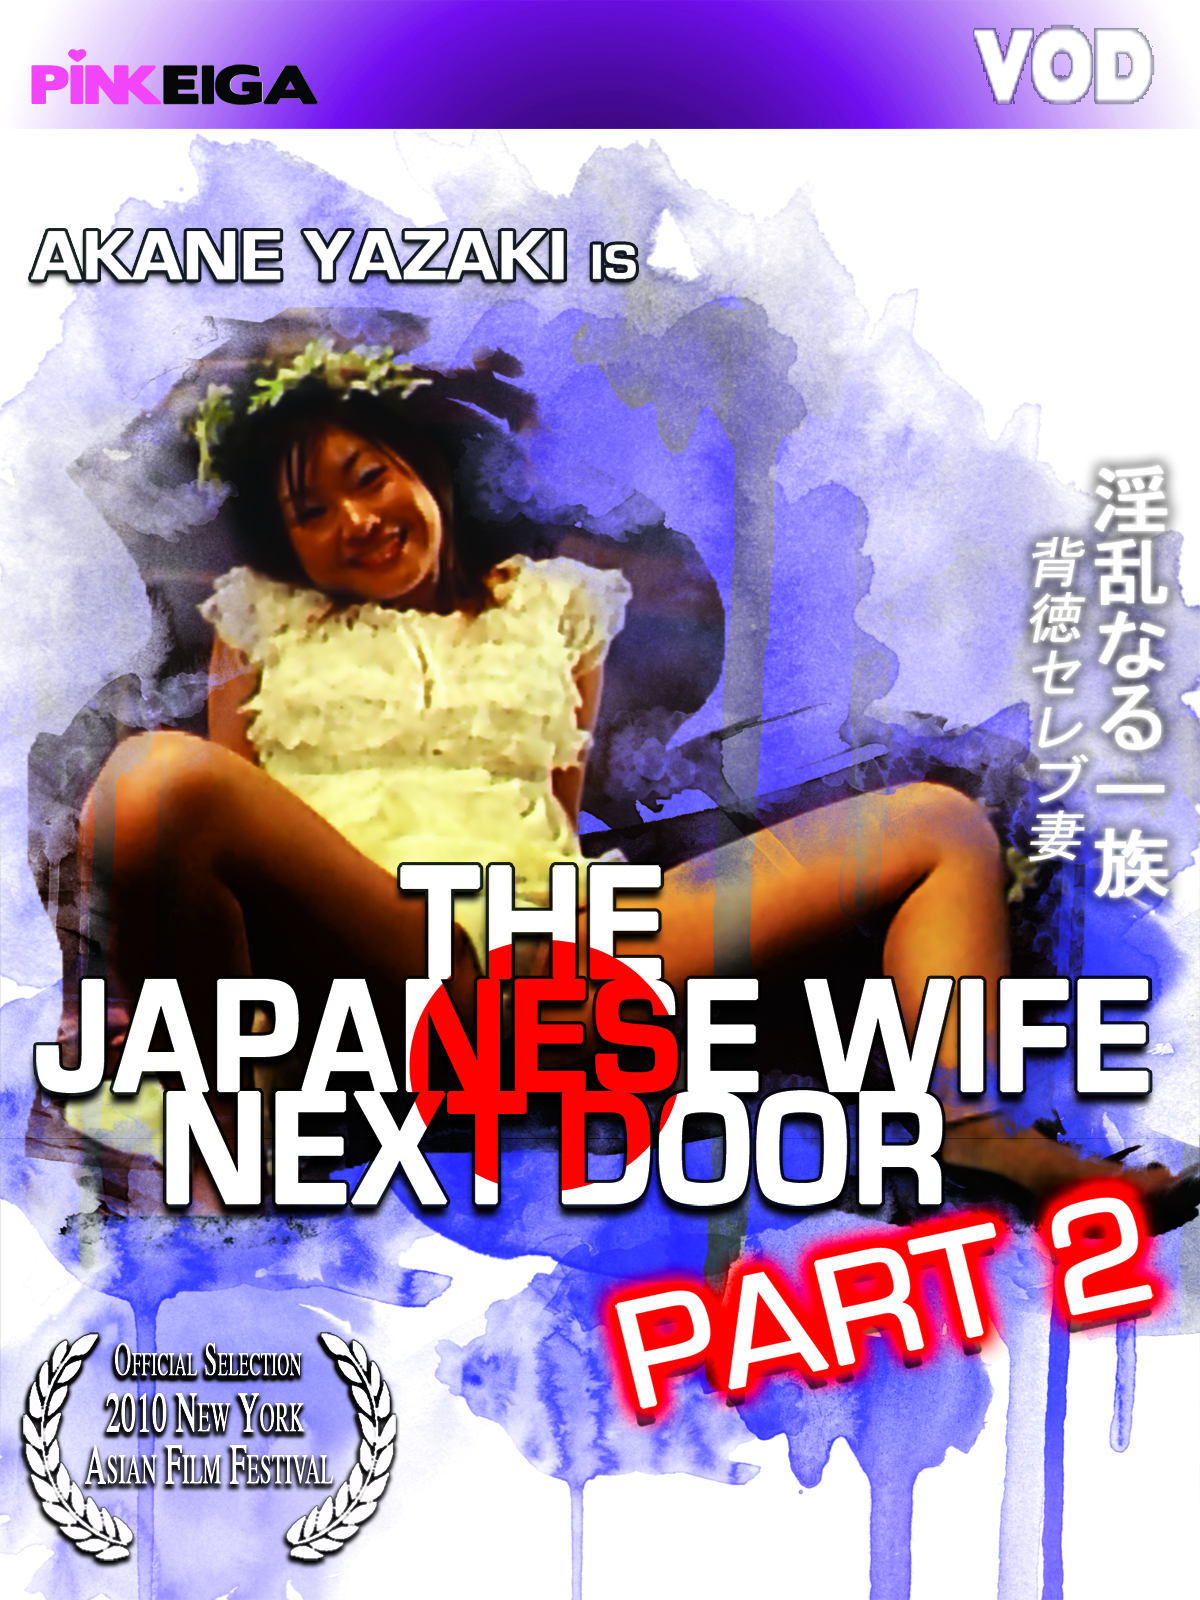 The Japanese Wife Next Door: Part 2  -SD- DOWNLOAD TO OWN